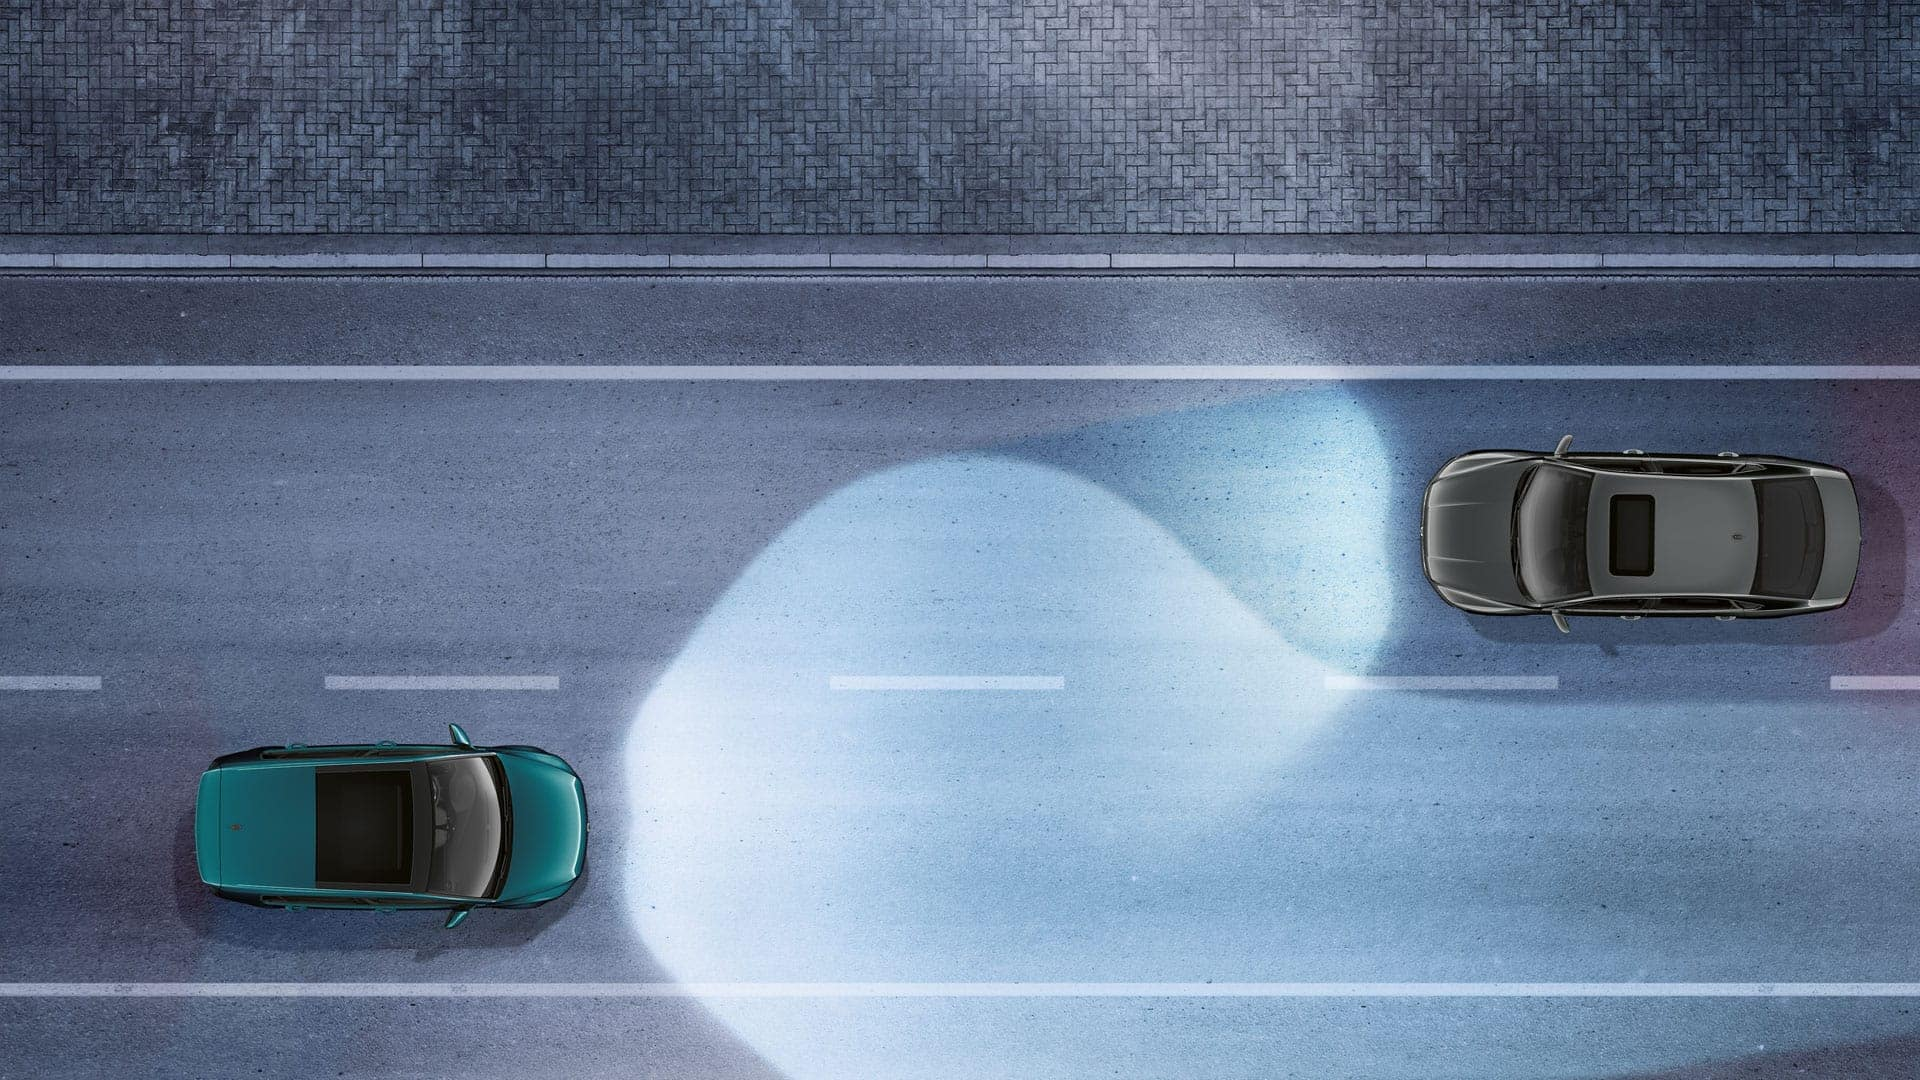 Infographic showing the 2019 VW Golf light assist feature.